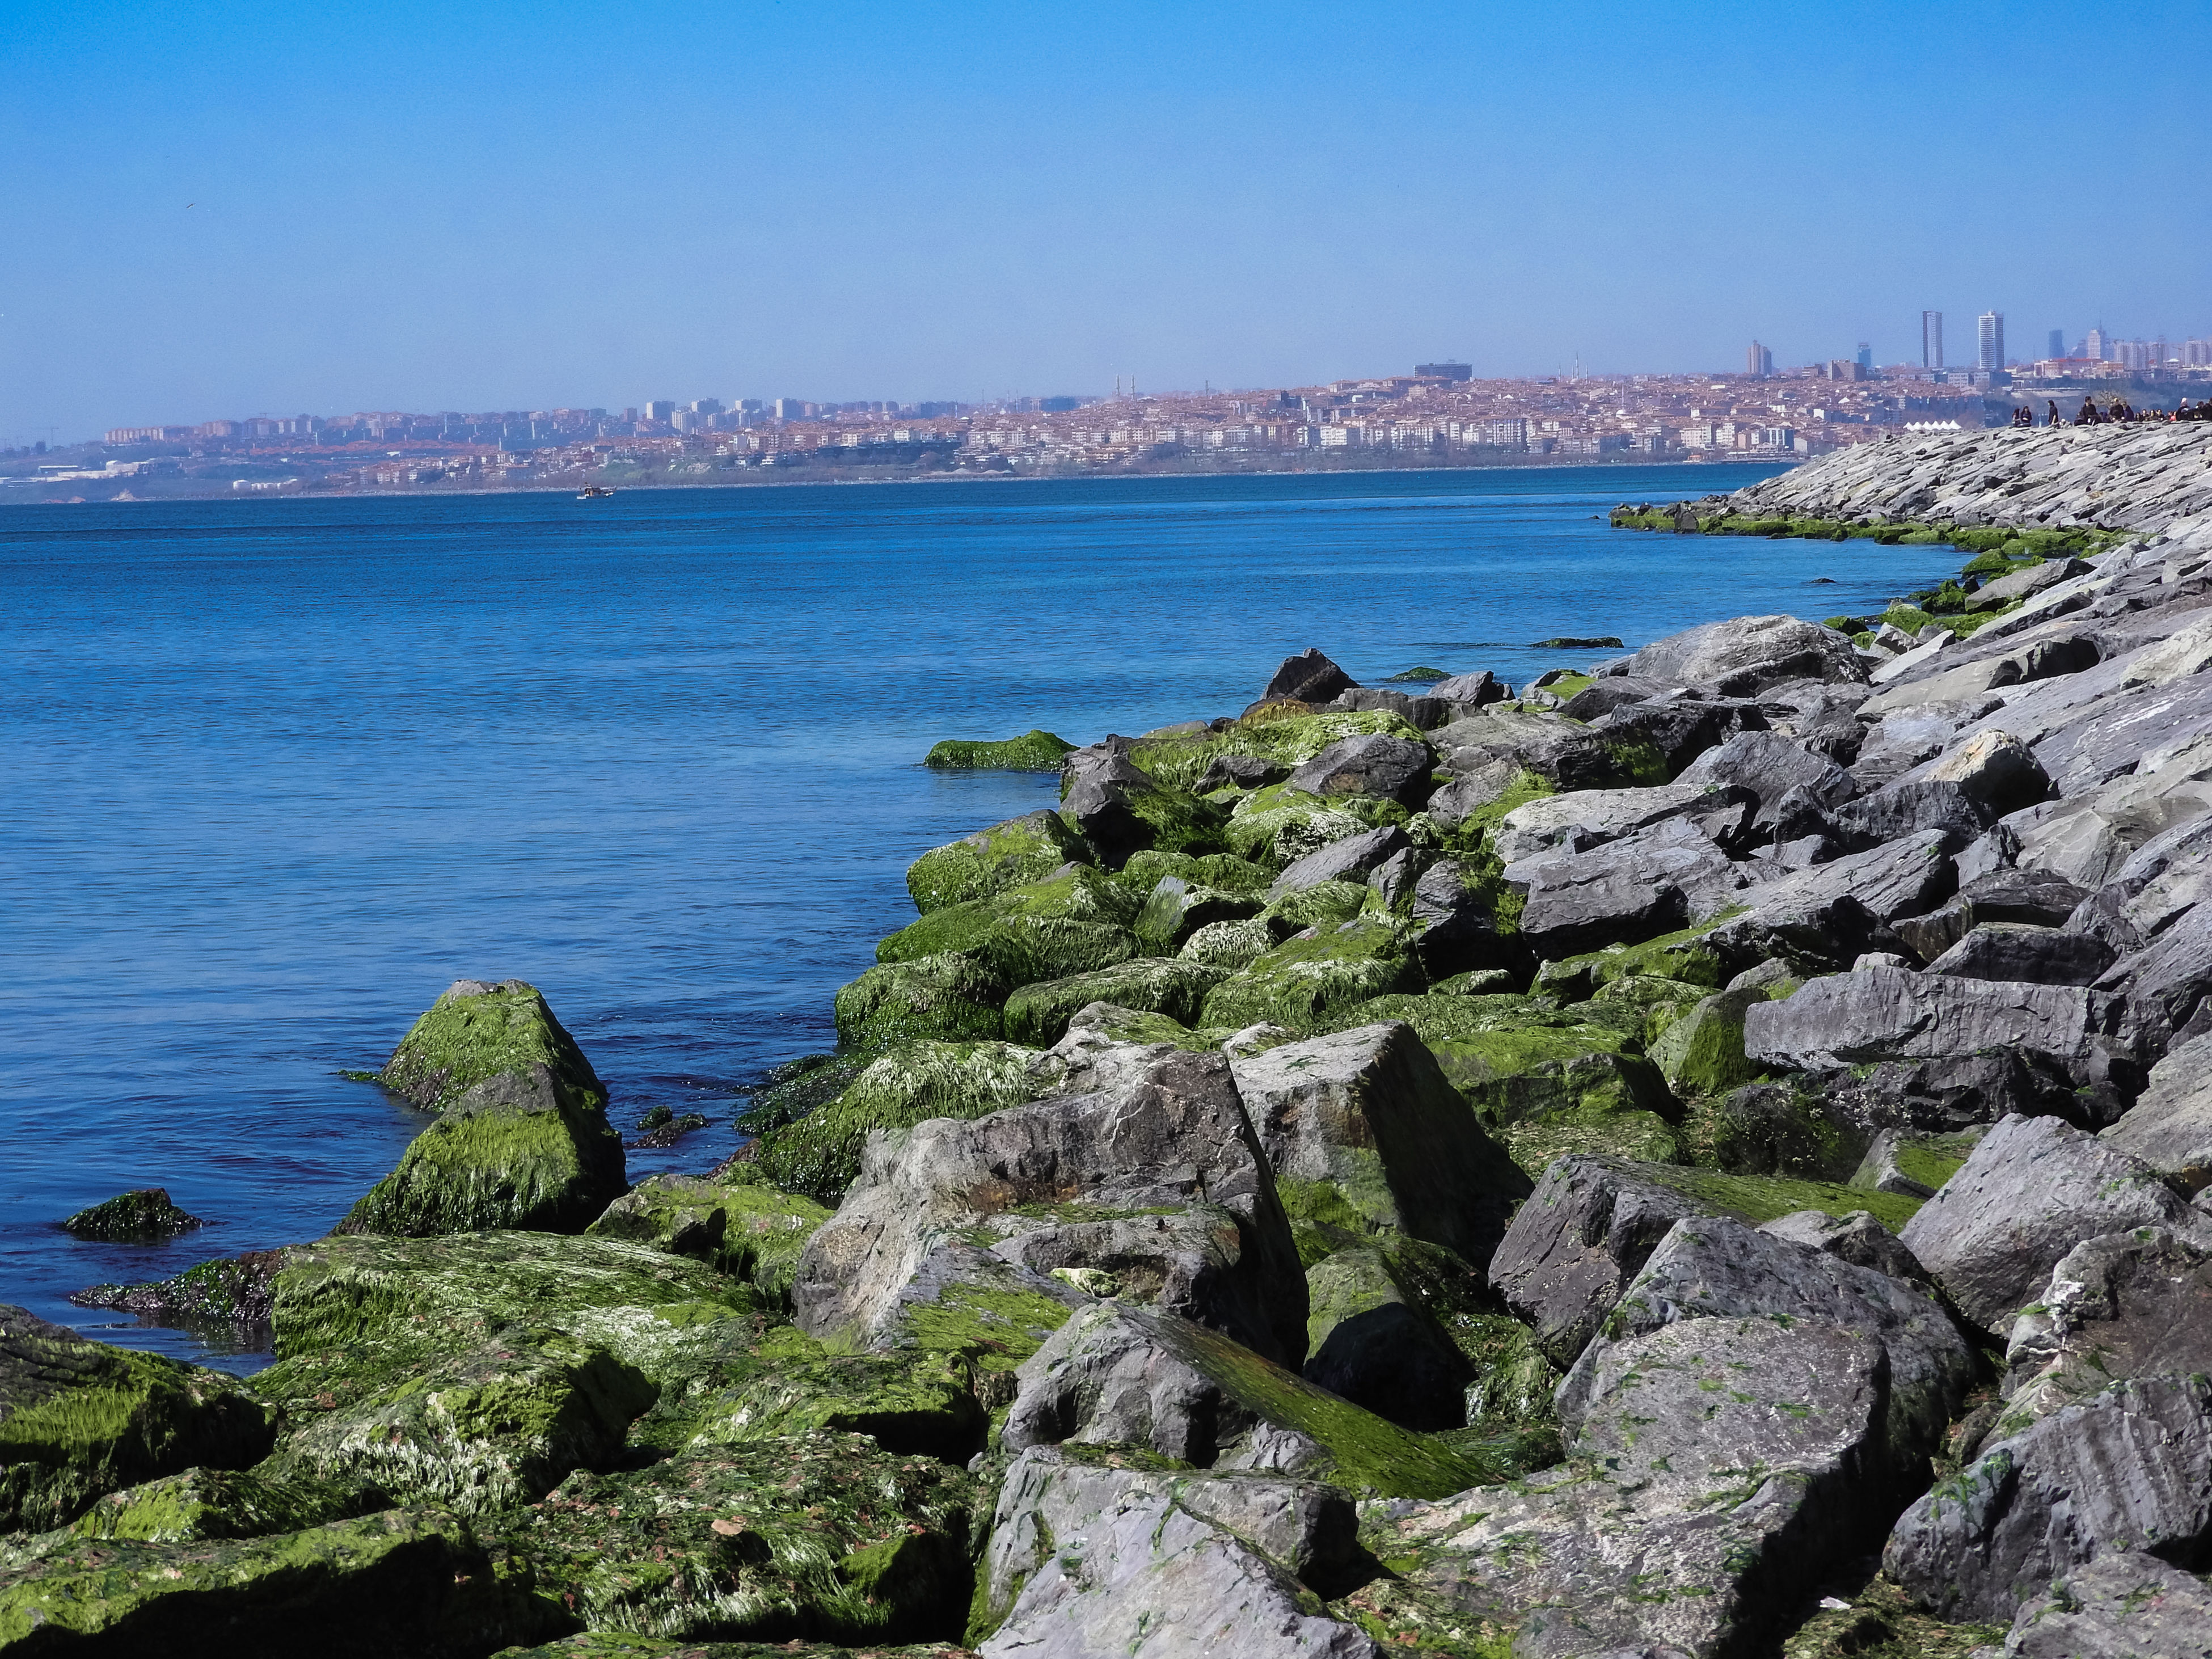 sea, water, outdoors, architecture, nature, built structure, day, clear sky, scenics, building exterior, travel destinations, no people, sky, city, cityscape, horizon over water, blue, beach, beauty in nature, skyscraper, urban skyline